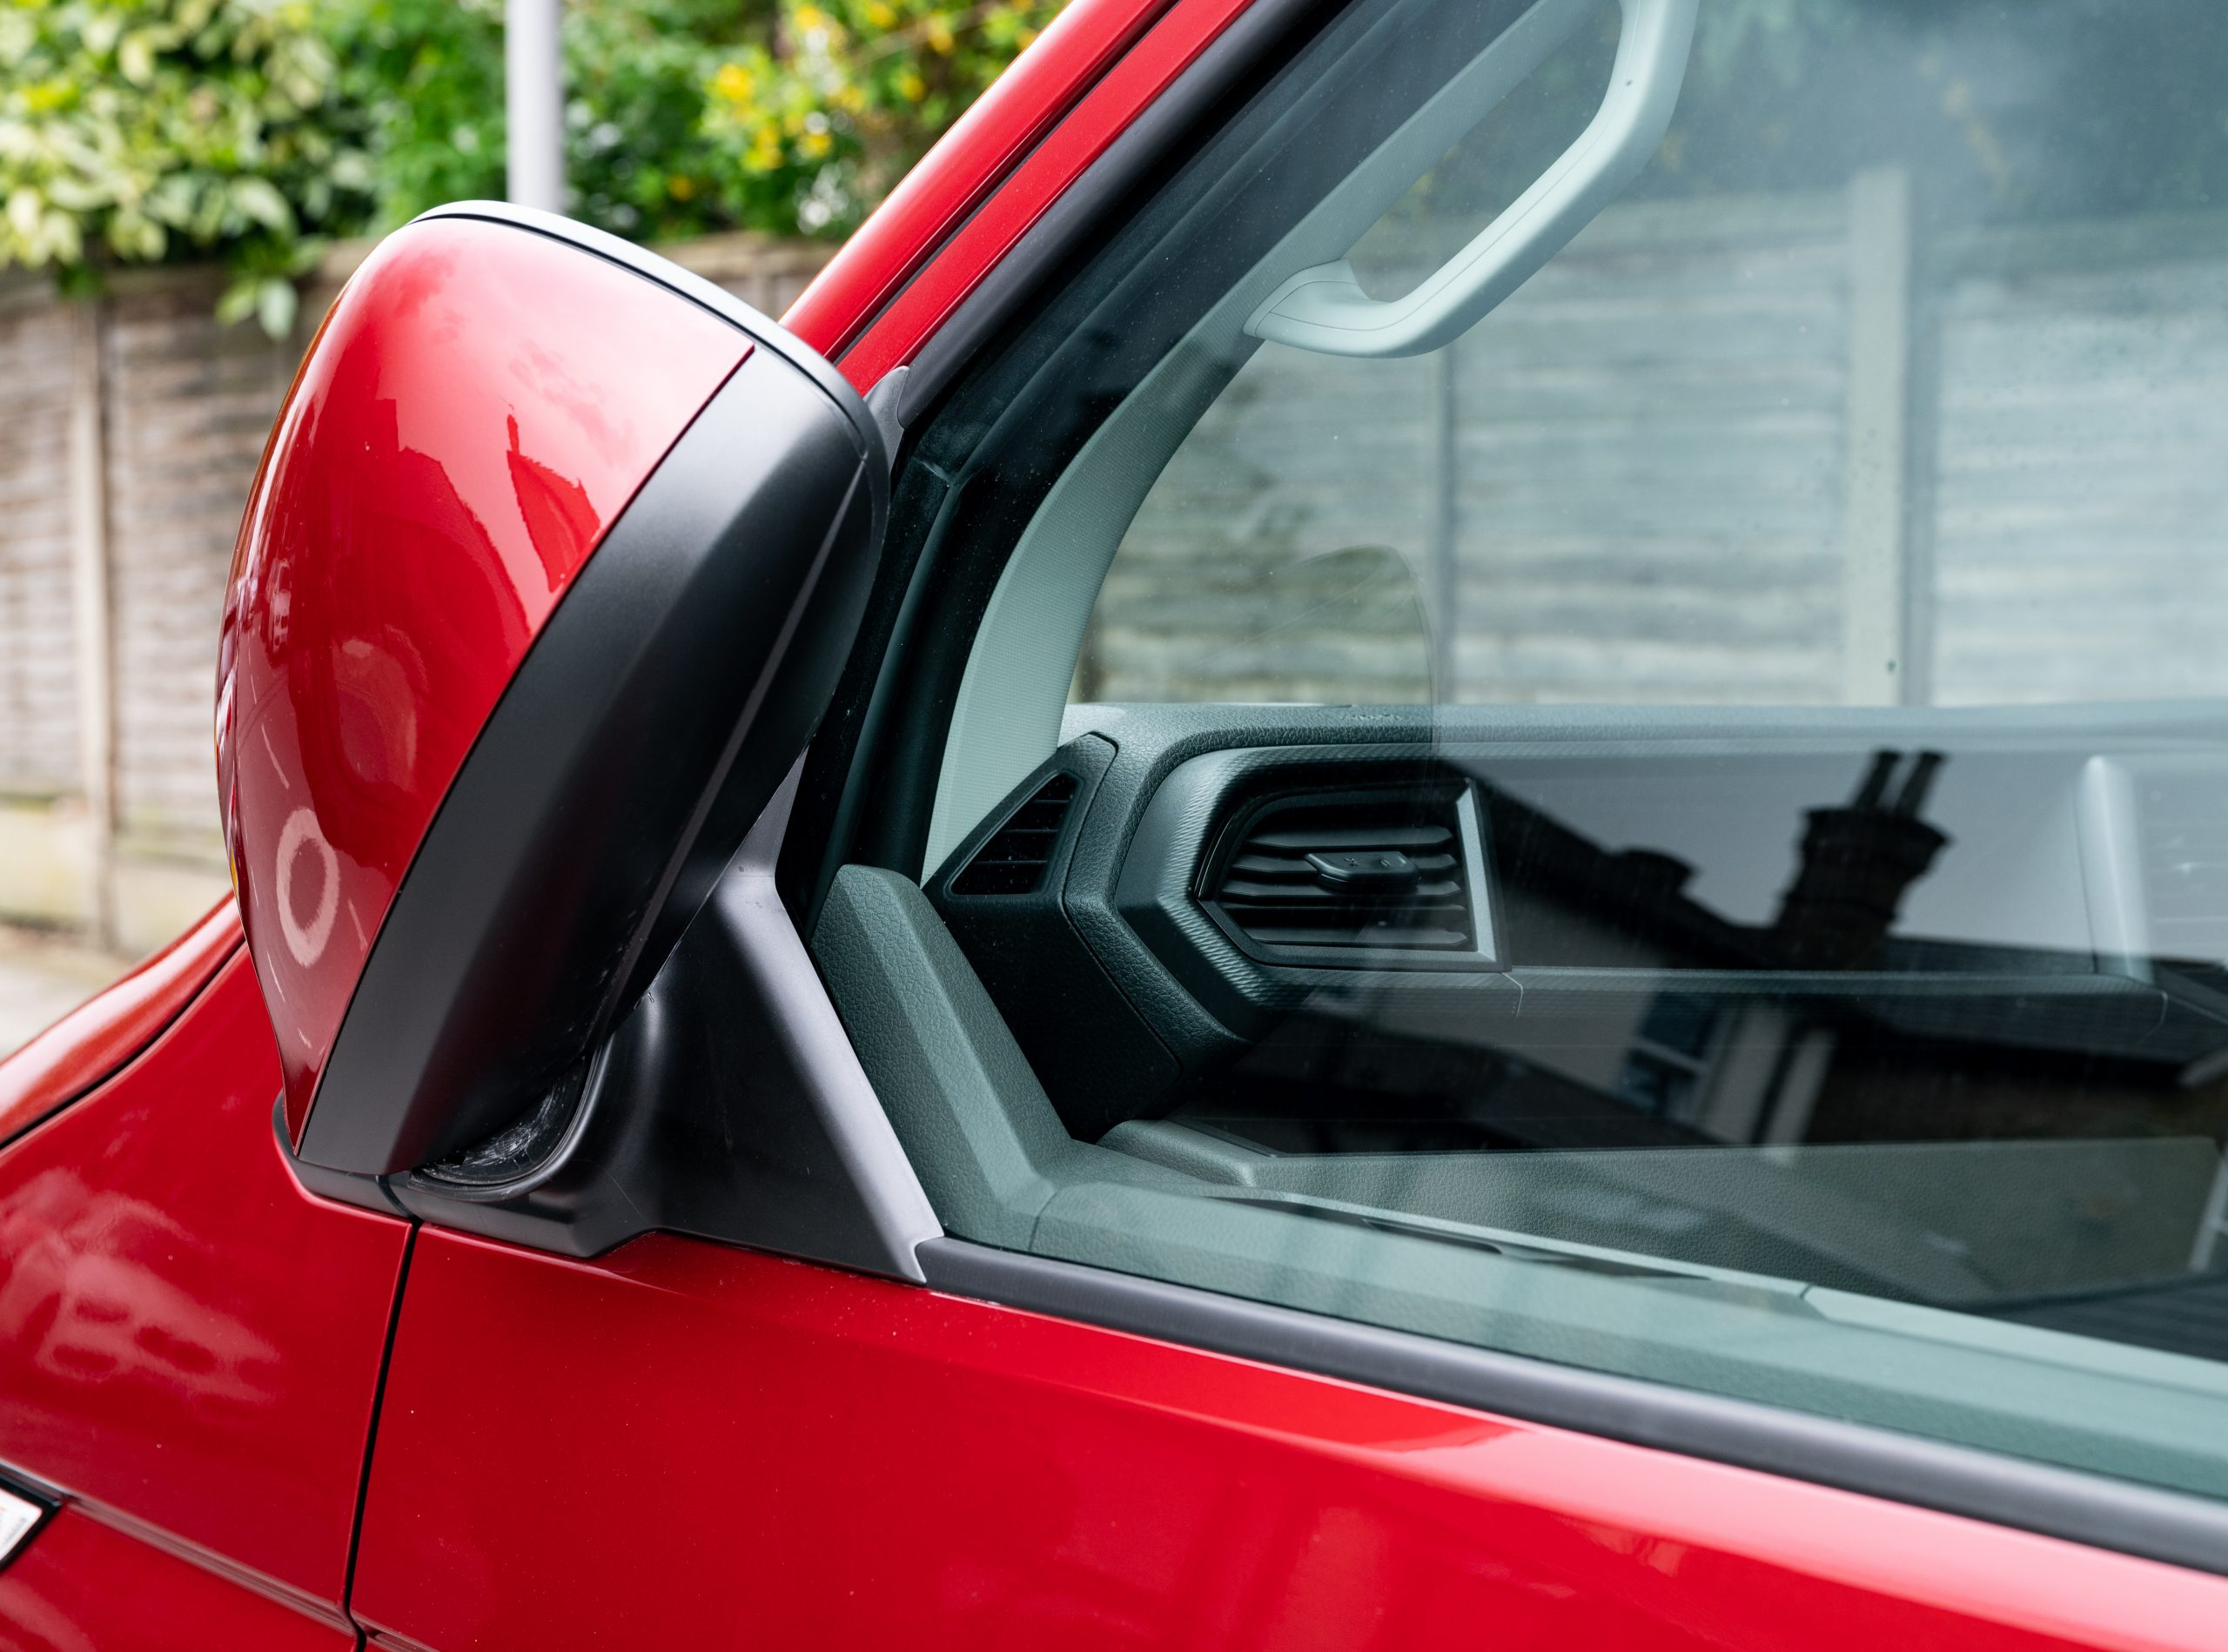 Replacement wing mirrors most common repair for VW van drivers